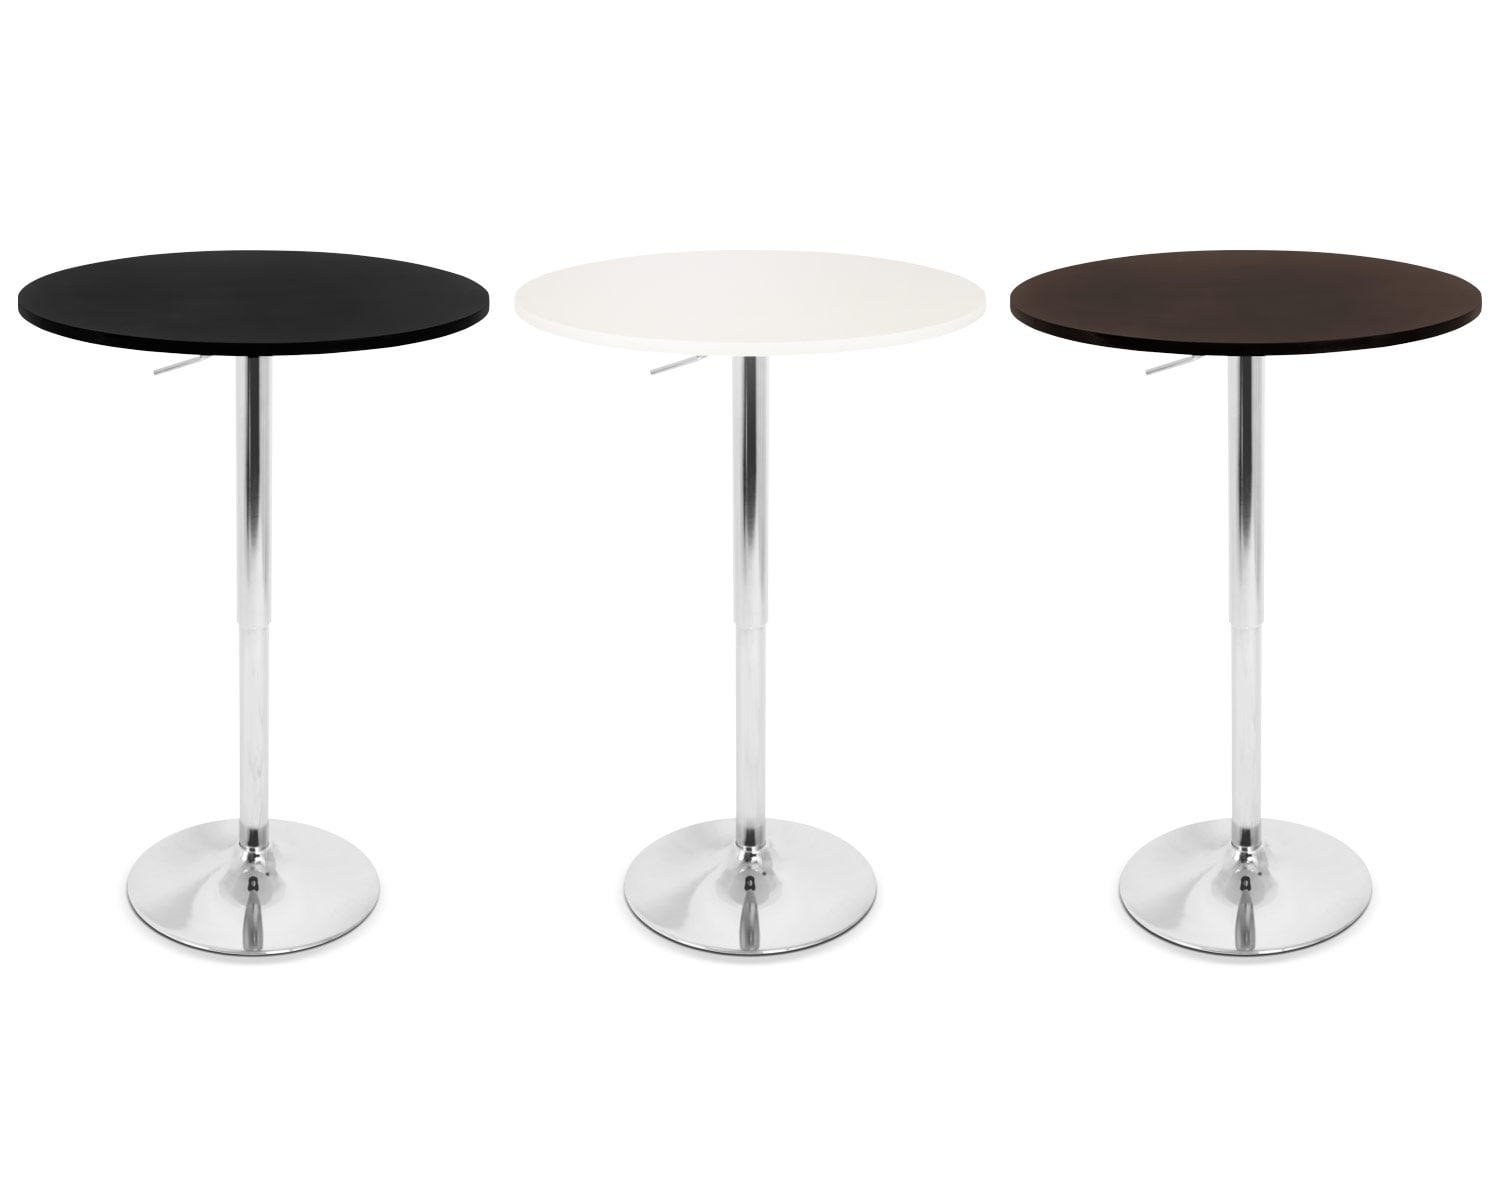 The Frankie Bar Table Collection